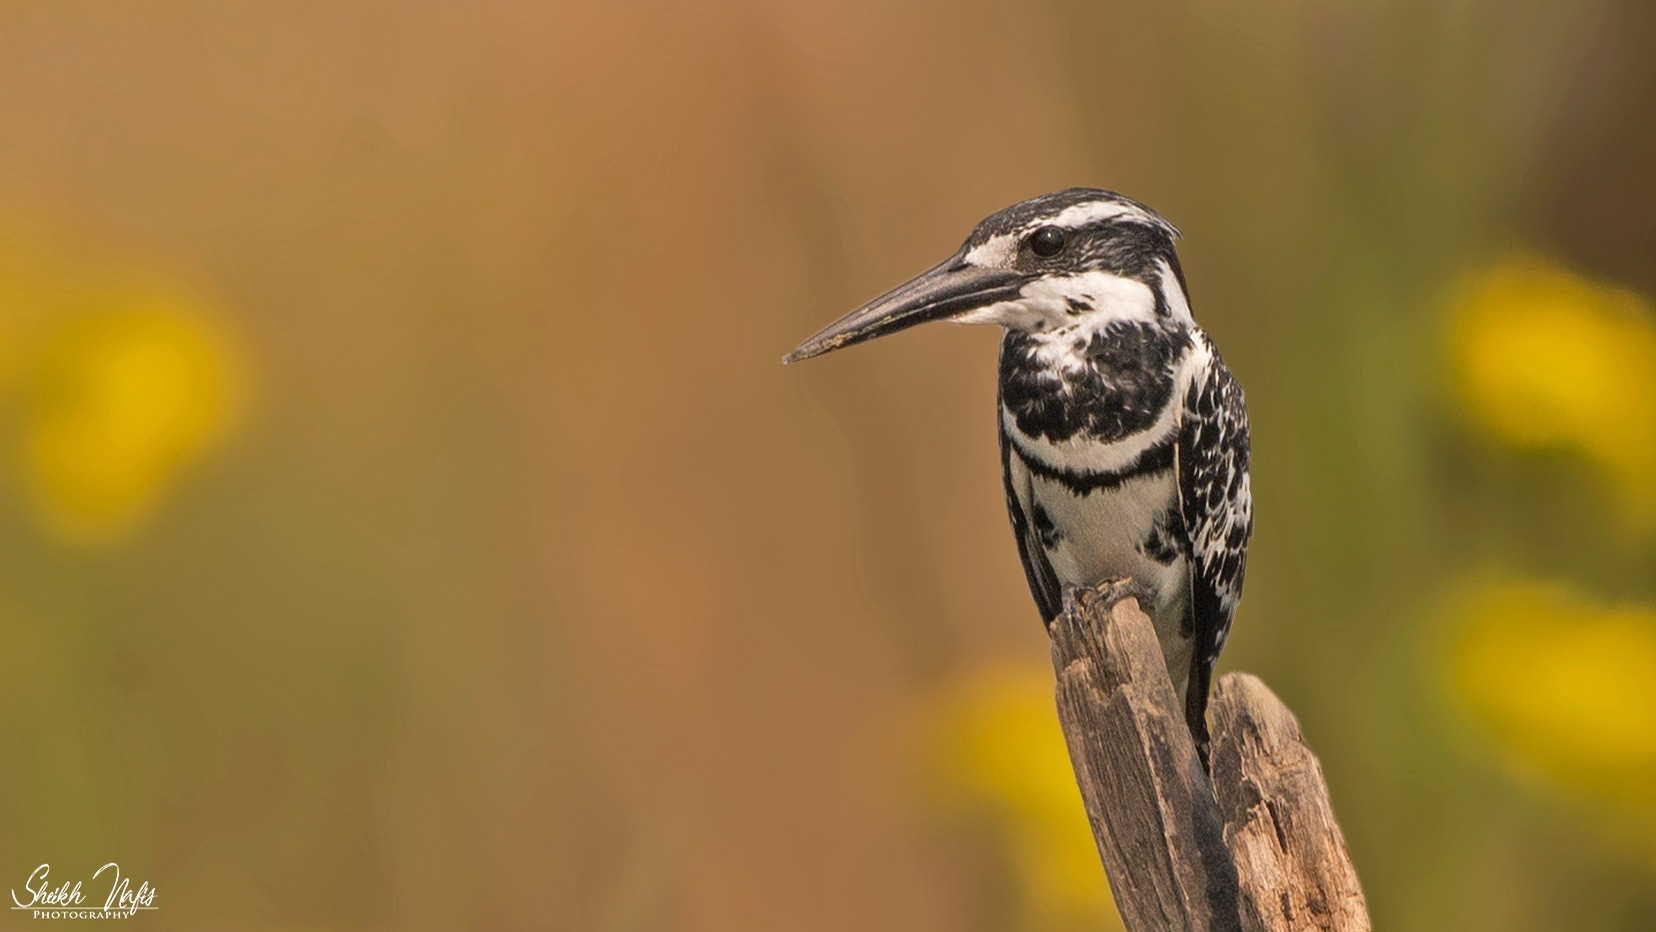 Pied Kingfisher by Sheikh Nafis